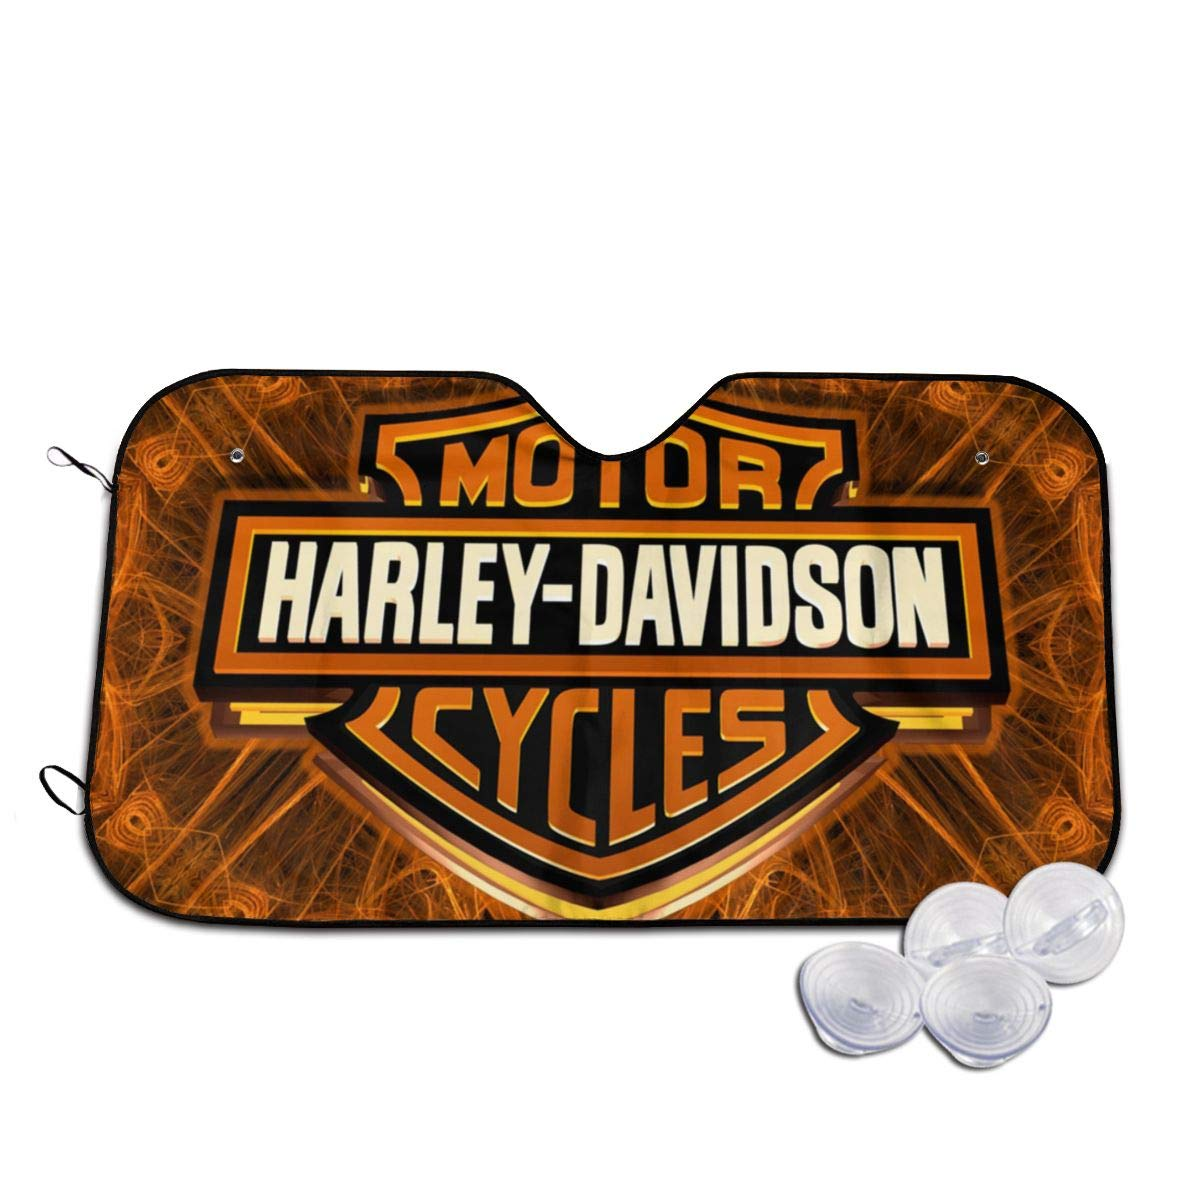 Harley-Davidson Front Windshield Sun Shade Auto Sunshade for Car Truck SUV Keep Your Vehicle Cool Small